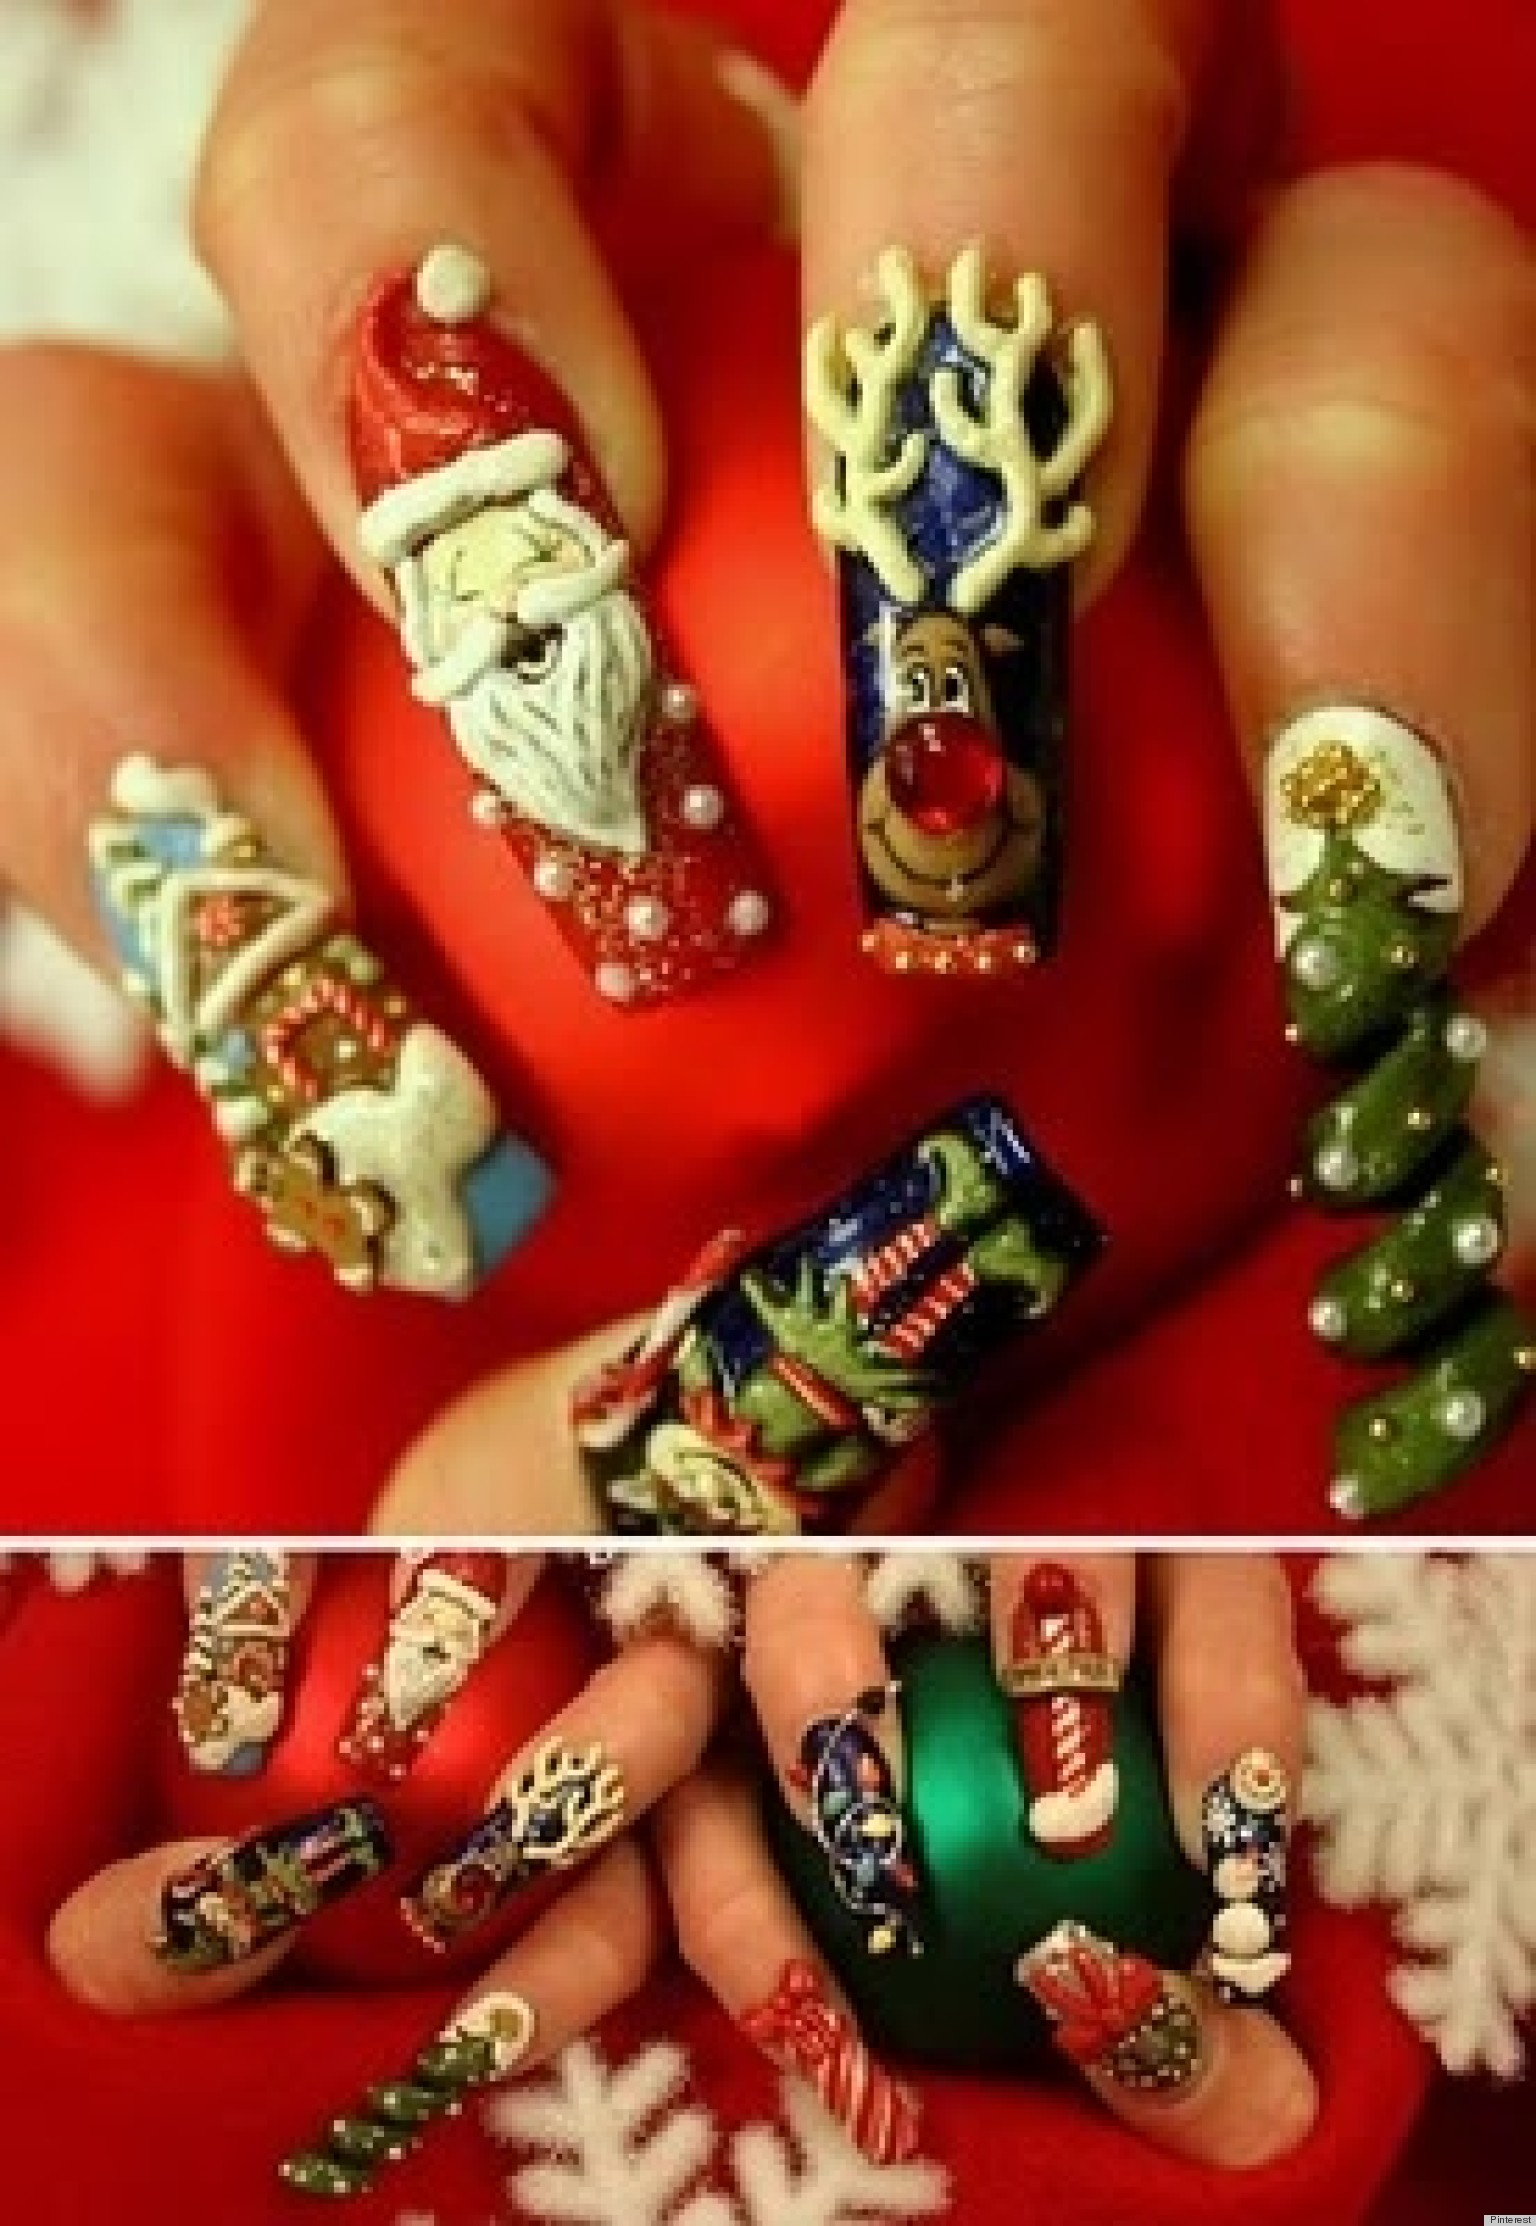 Christmas Nail Art: Santa Claus, Rudolph The Red-Nosed Reindeer And ...